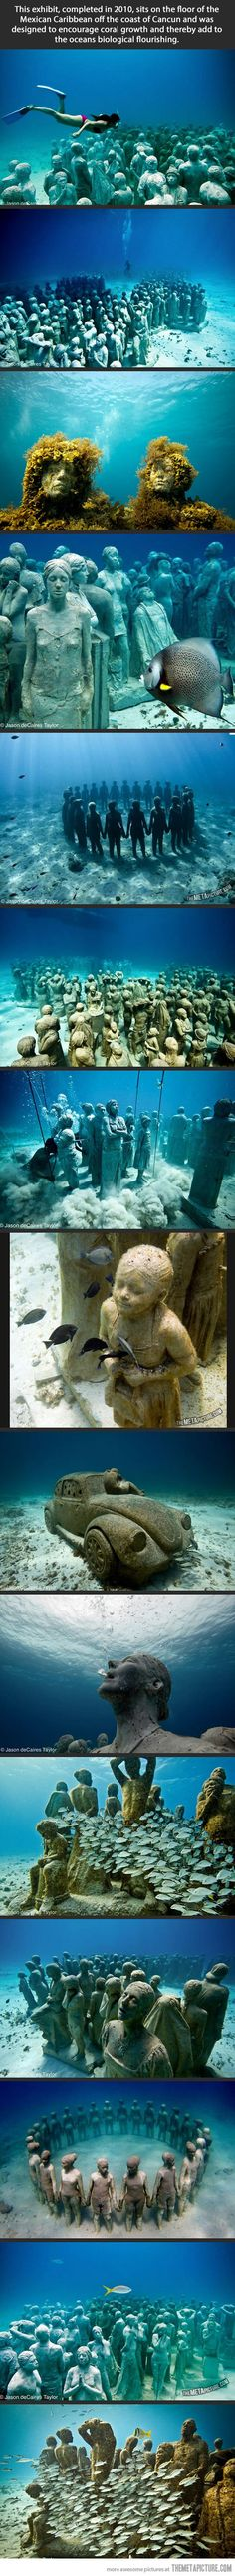 Freaky! Imagine swimming underwater and coming across something like this